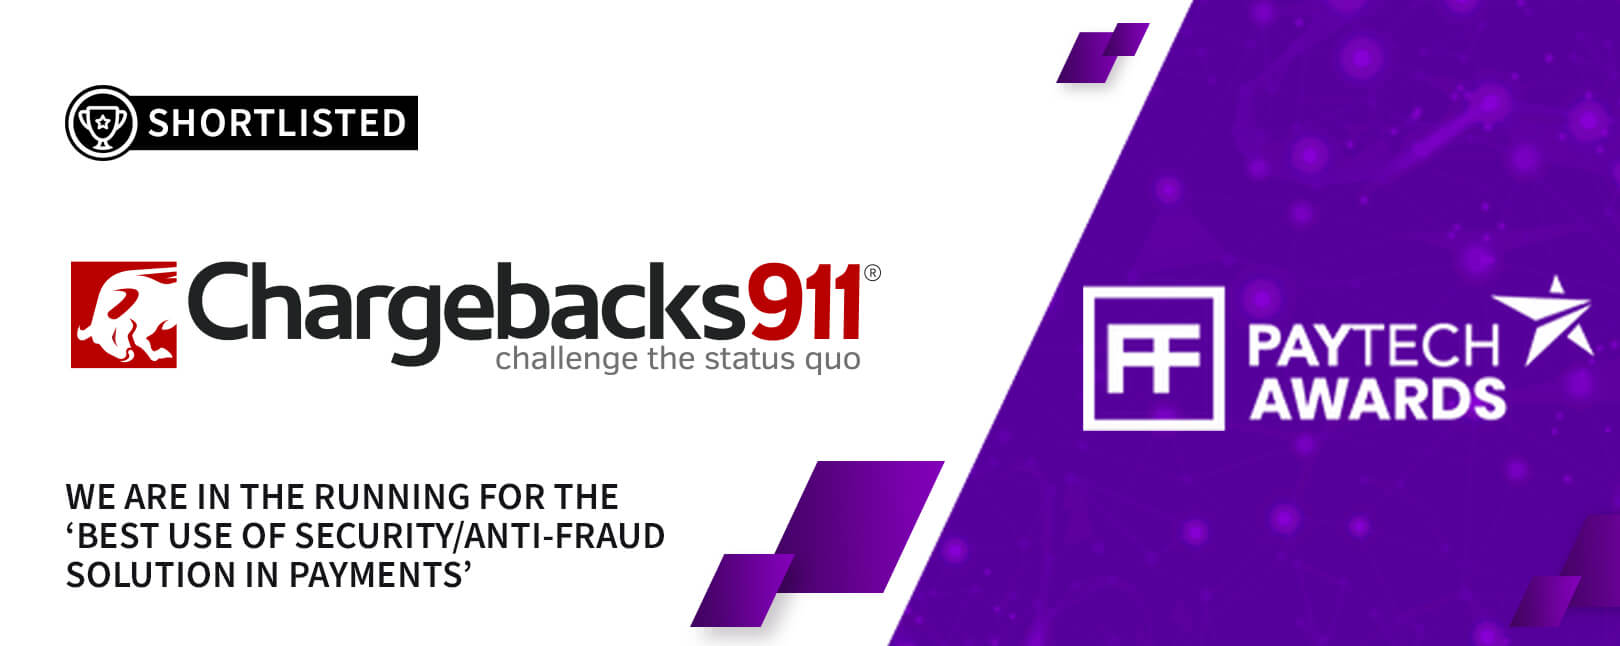 Chargebacks911® Tapped for Two Titles at PayTech Awards 2021